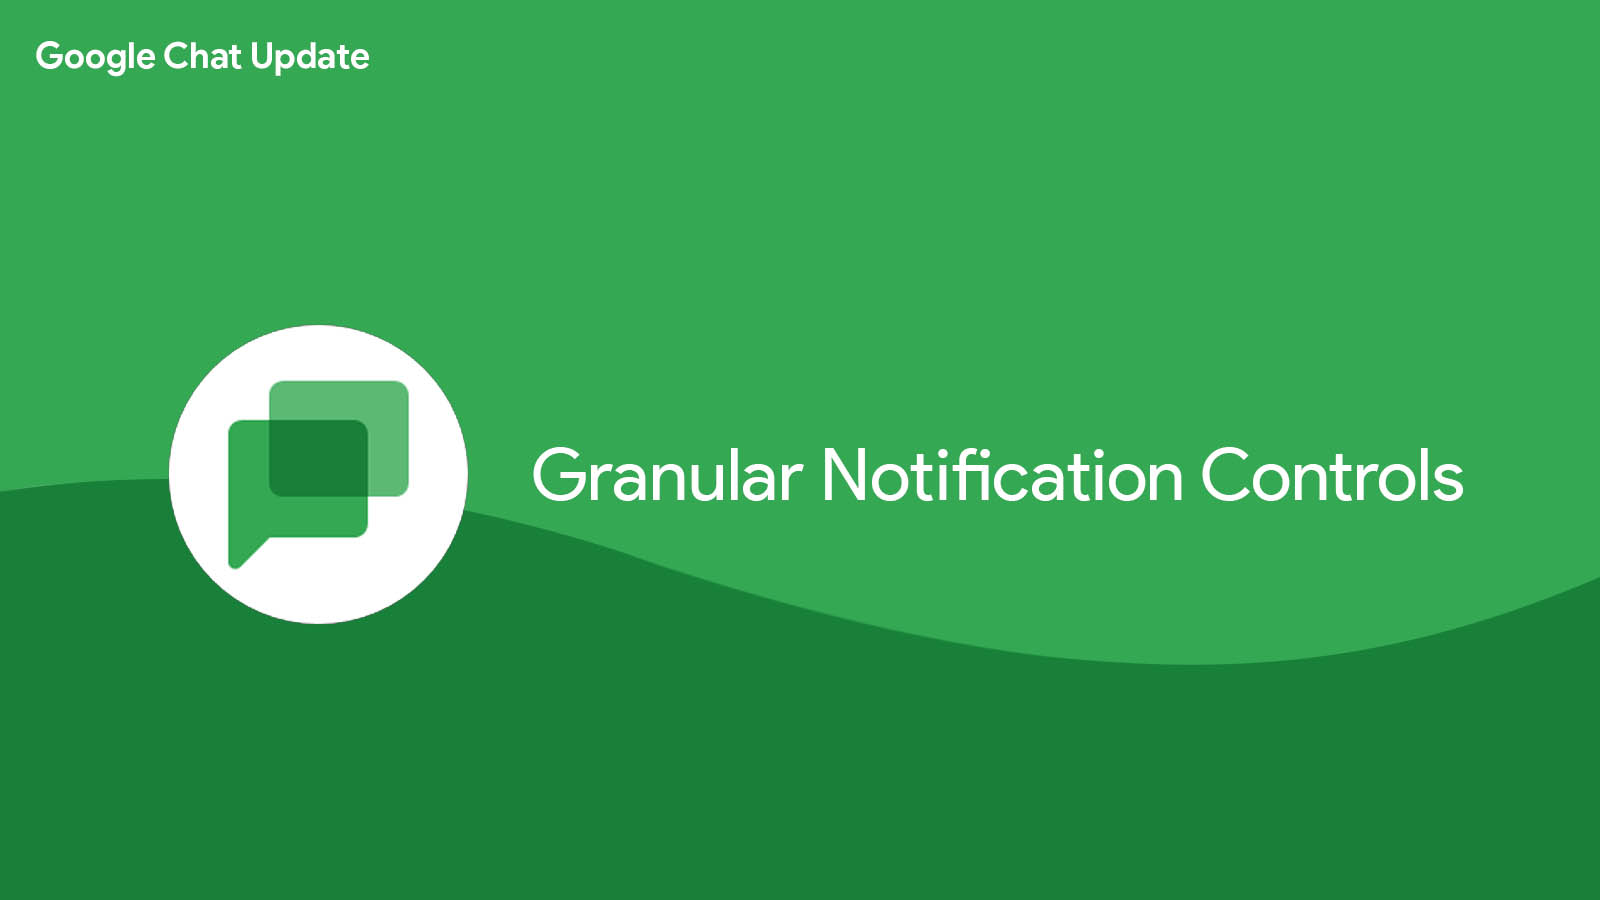 Google Chat adds granular notification controls so you can reclaim your sanity